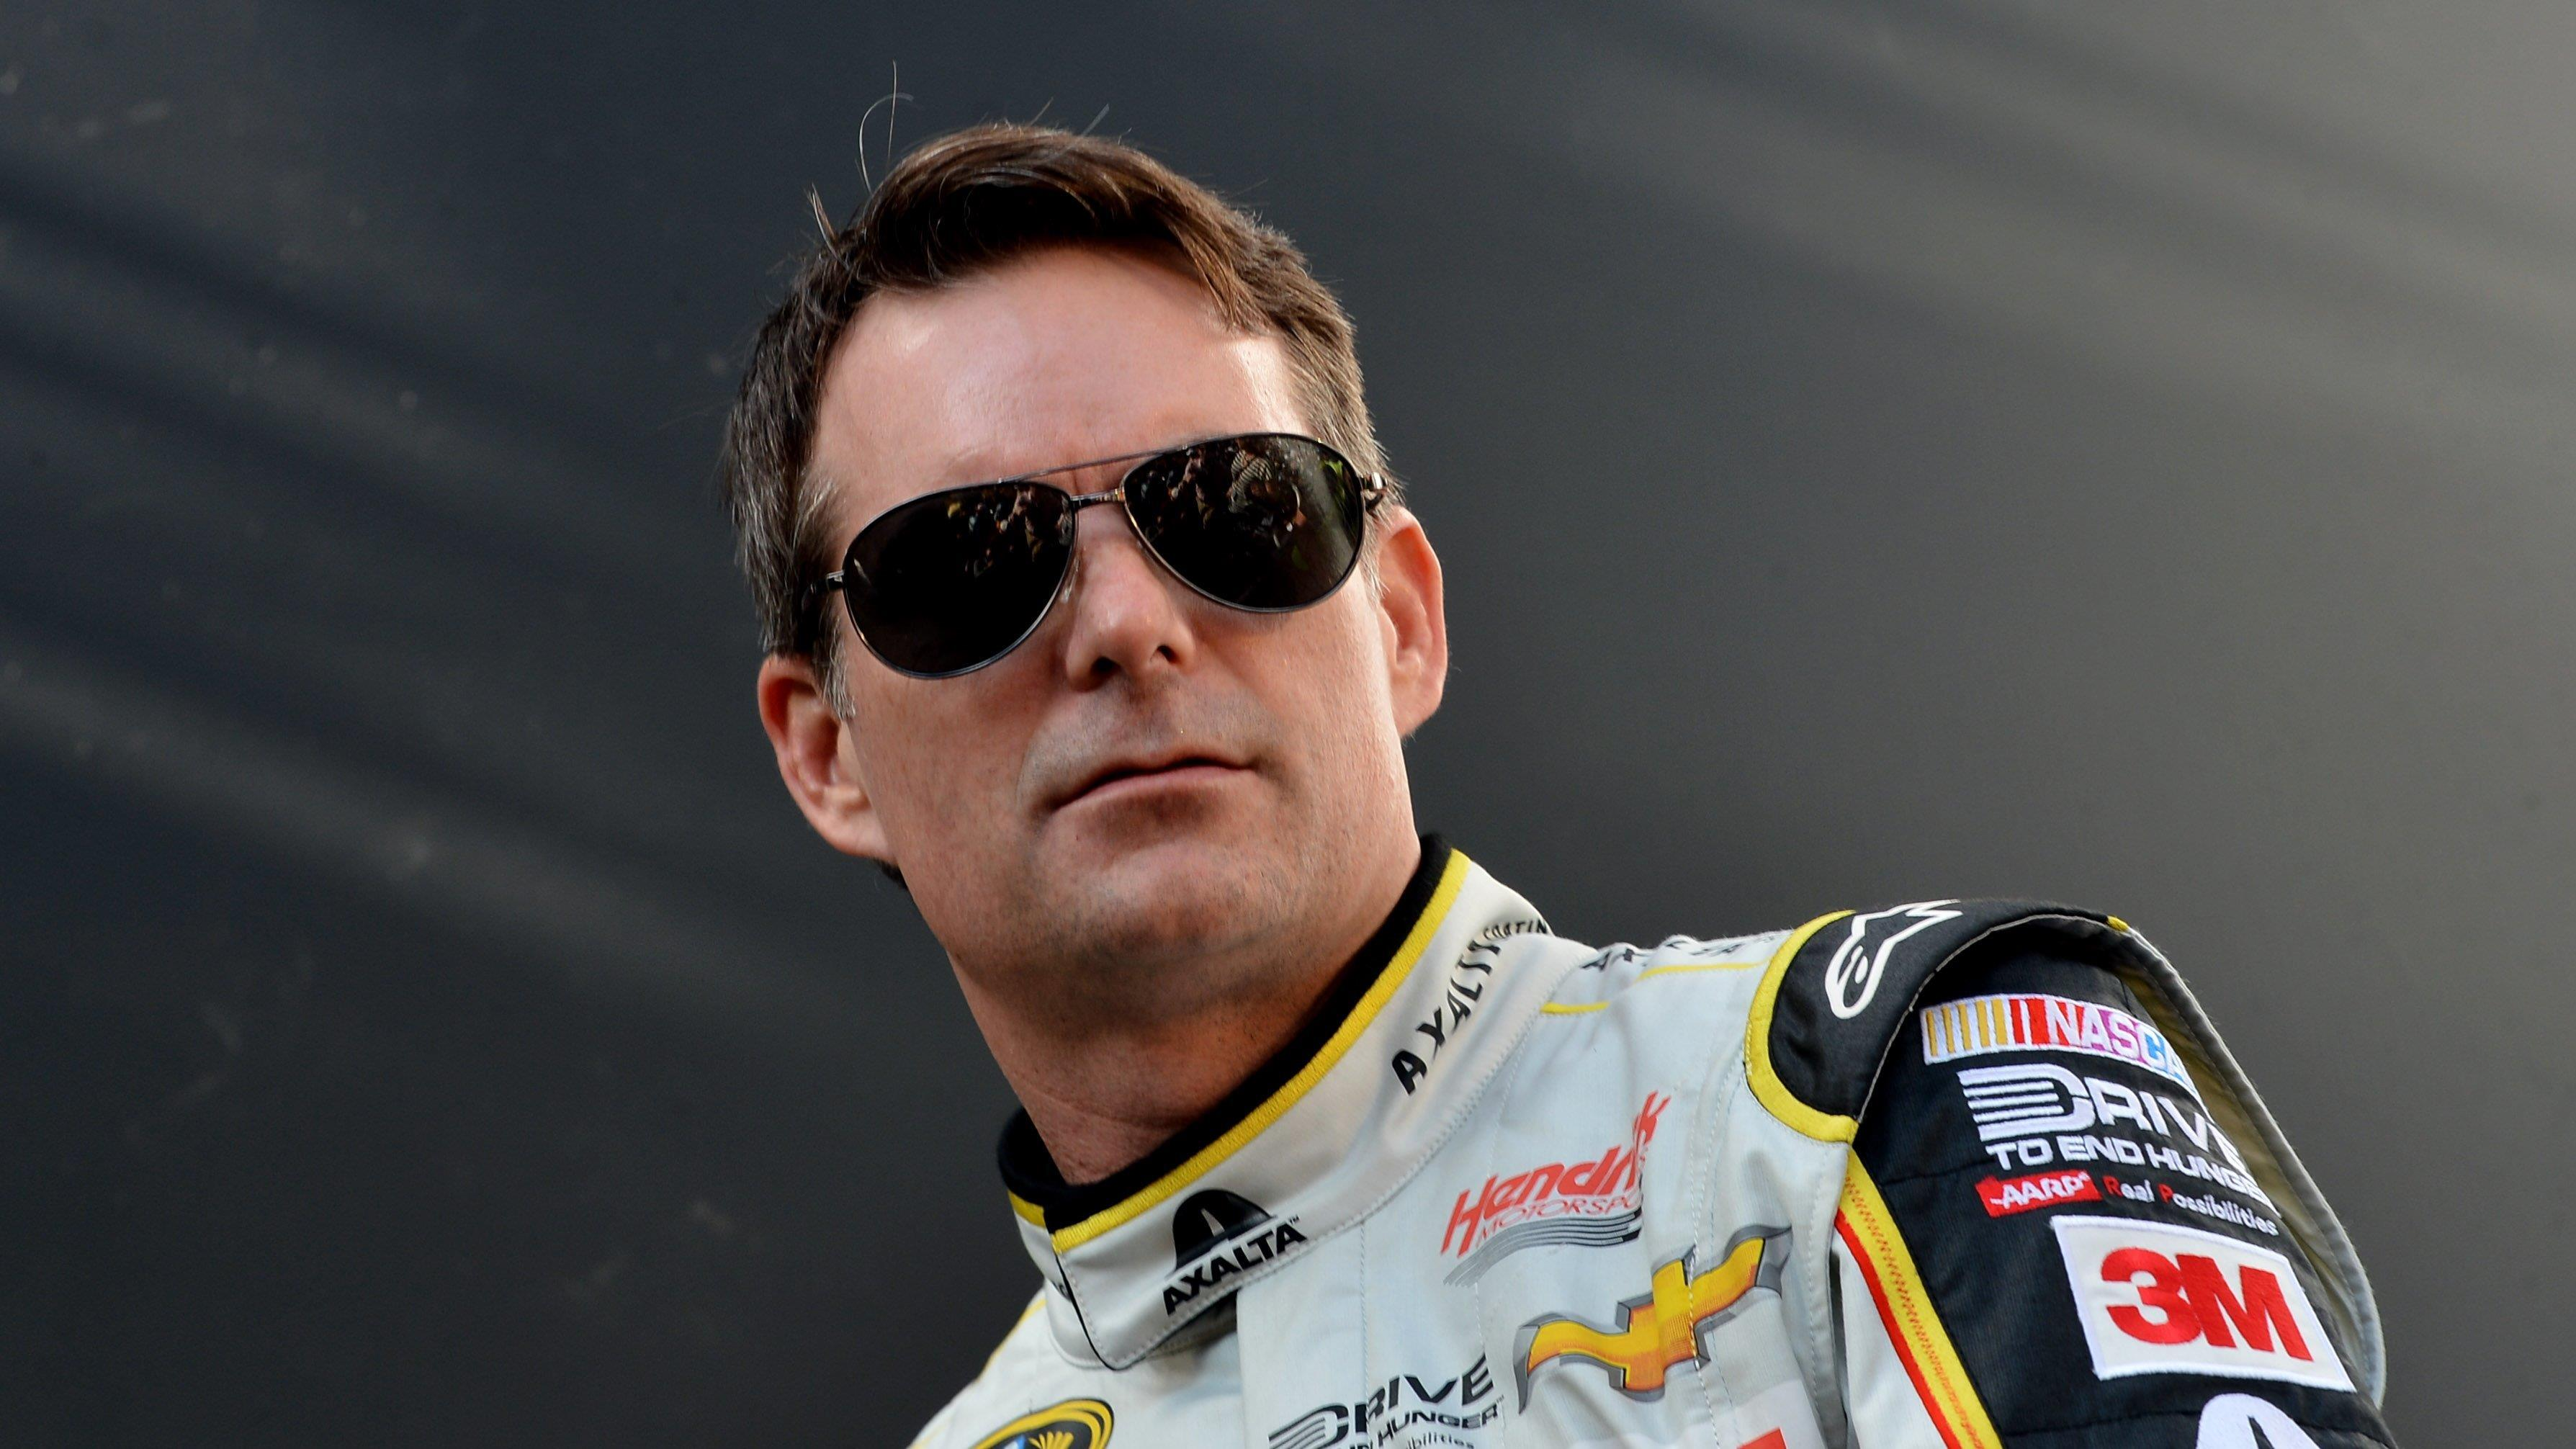 NASCAR legend Jeff Gordon discusses his new career in live television, his career as a racecar driver and his new biography.